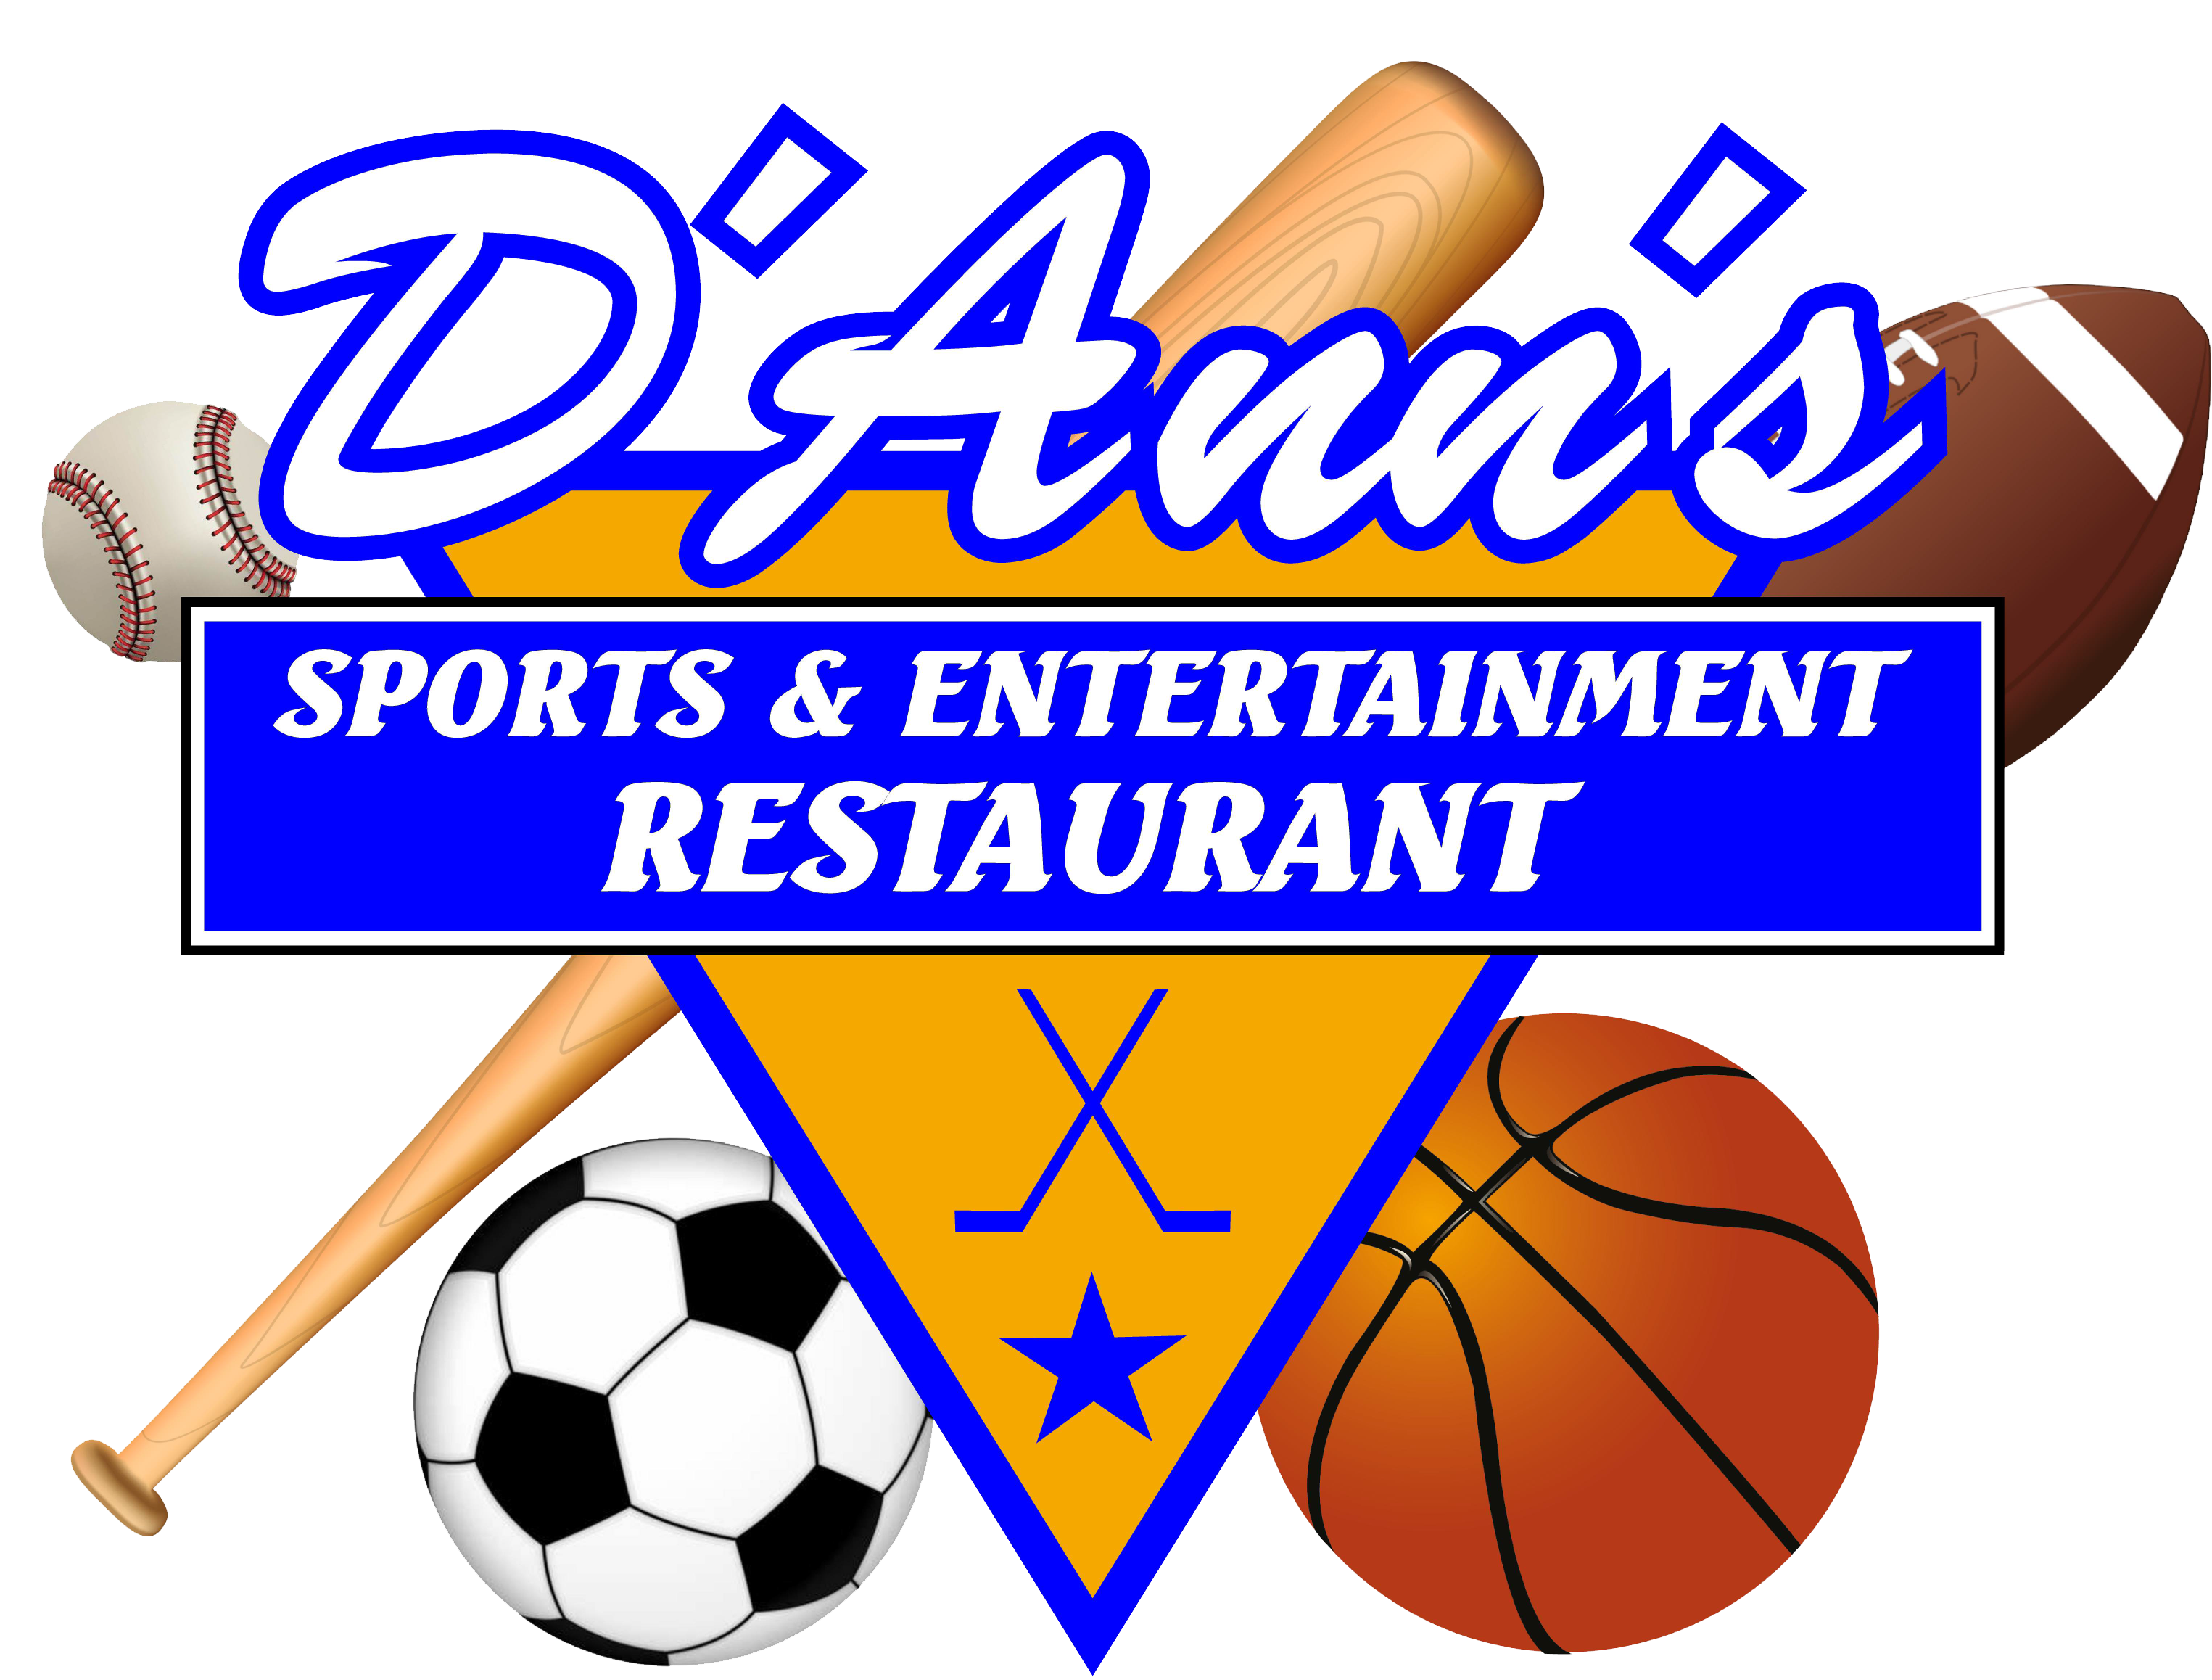 D'Ann's Sports & Entertainment Restaurant Home